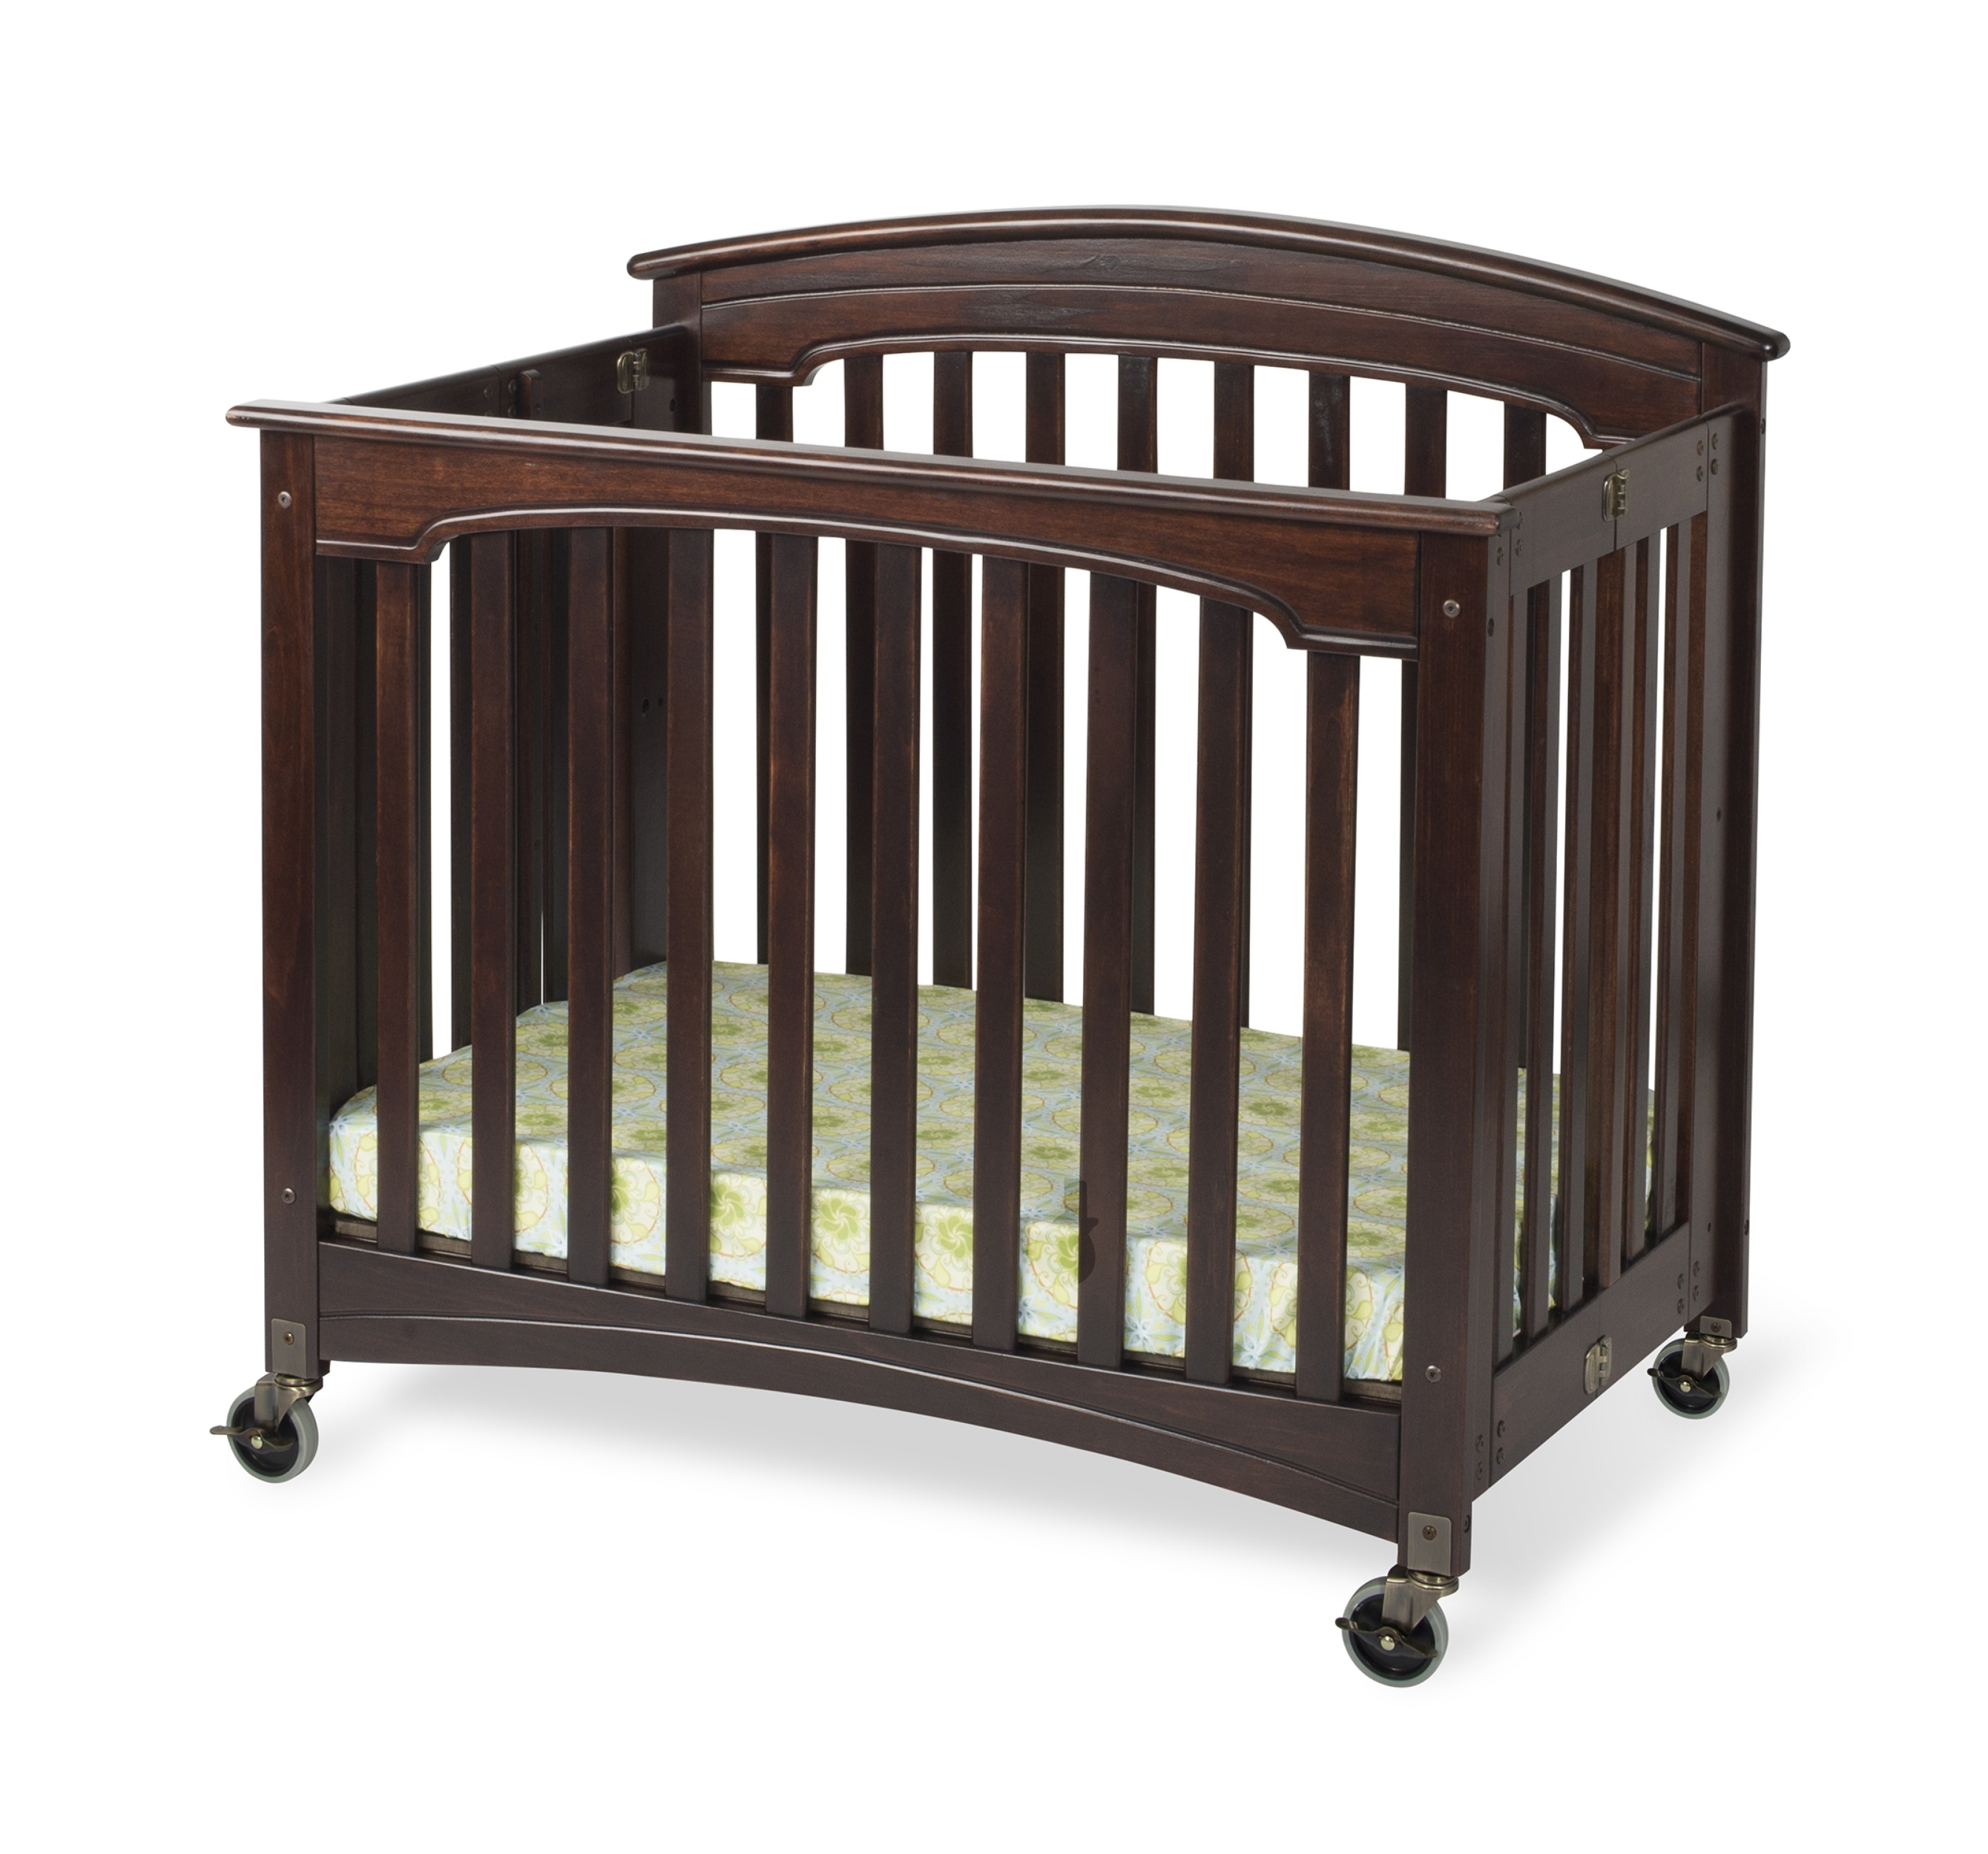 Royale - Solid Wood Folding Crib - NEW!!! Crib, Royale, Foundations, Wood, Slatted